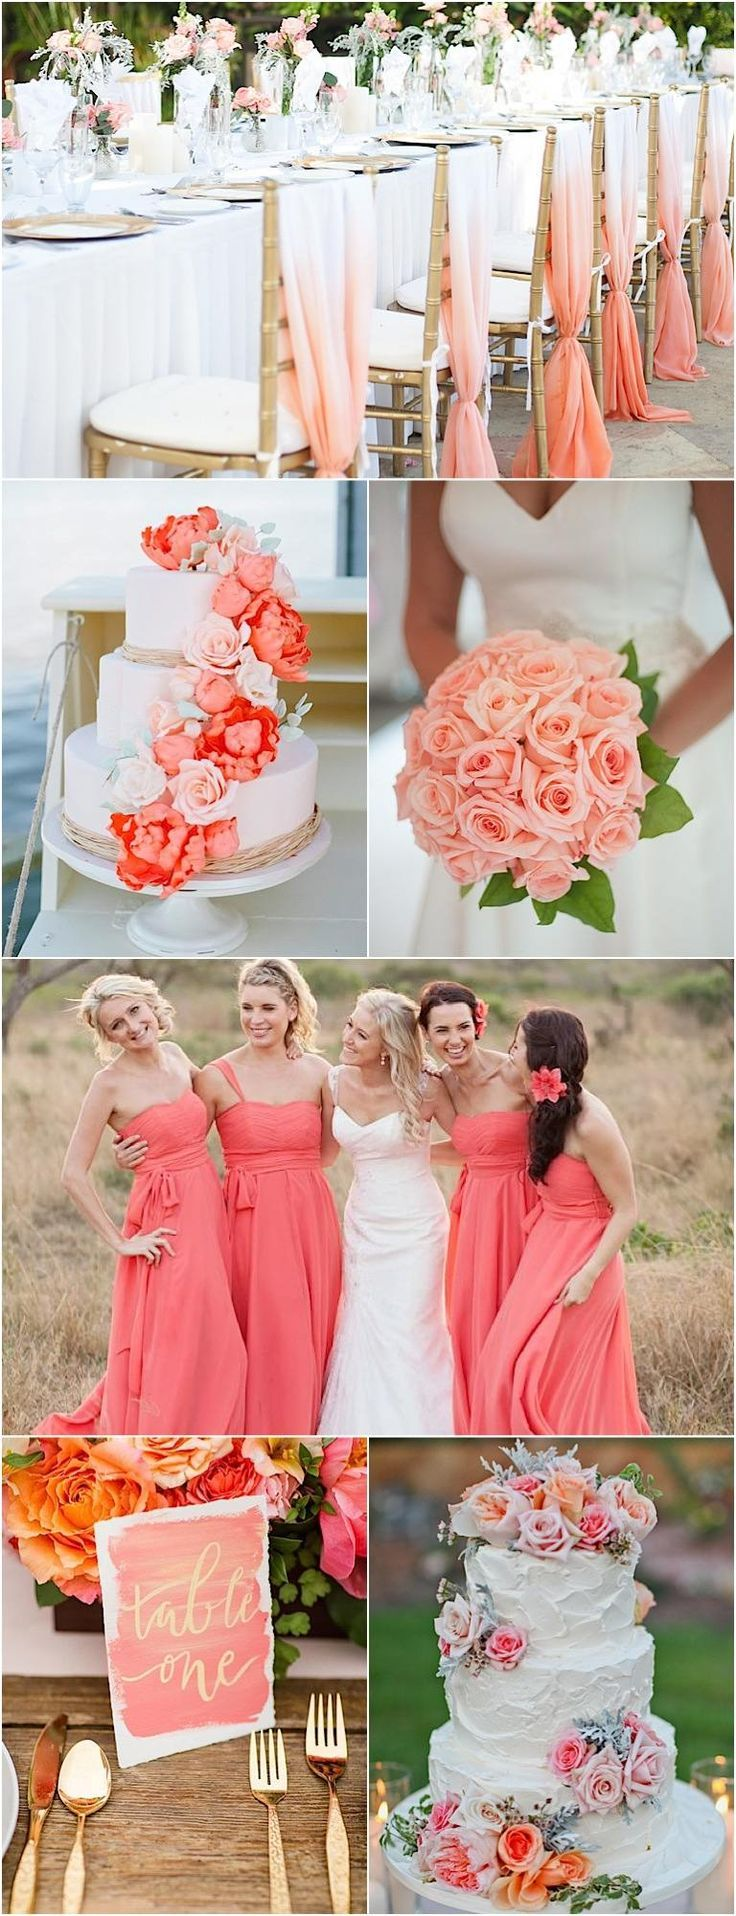 Color Inspiration: Perfect Coral and Gold Wedding Ideas - MODwedding